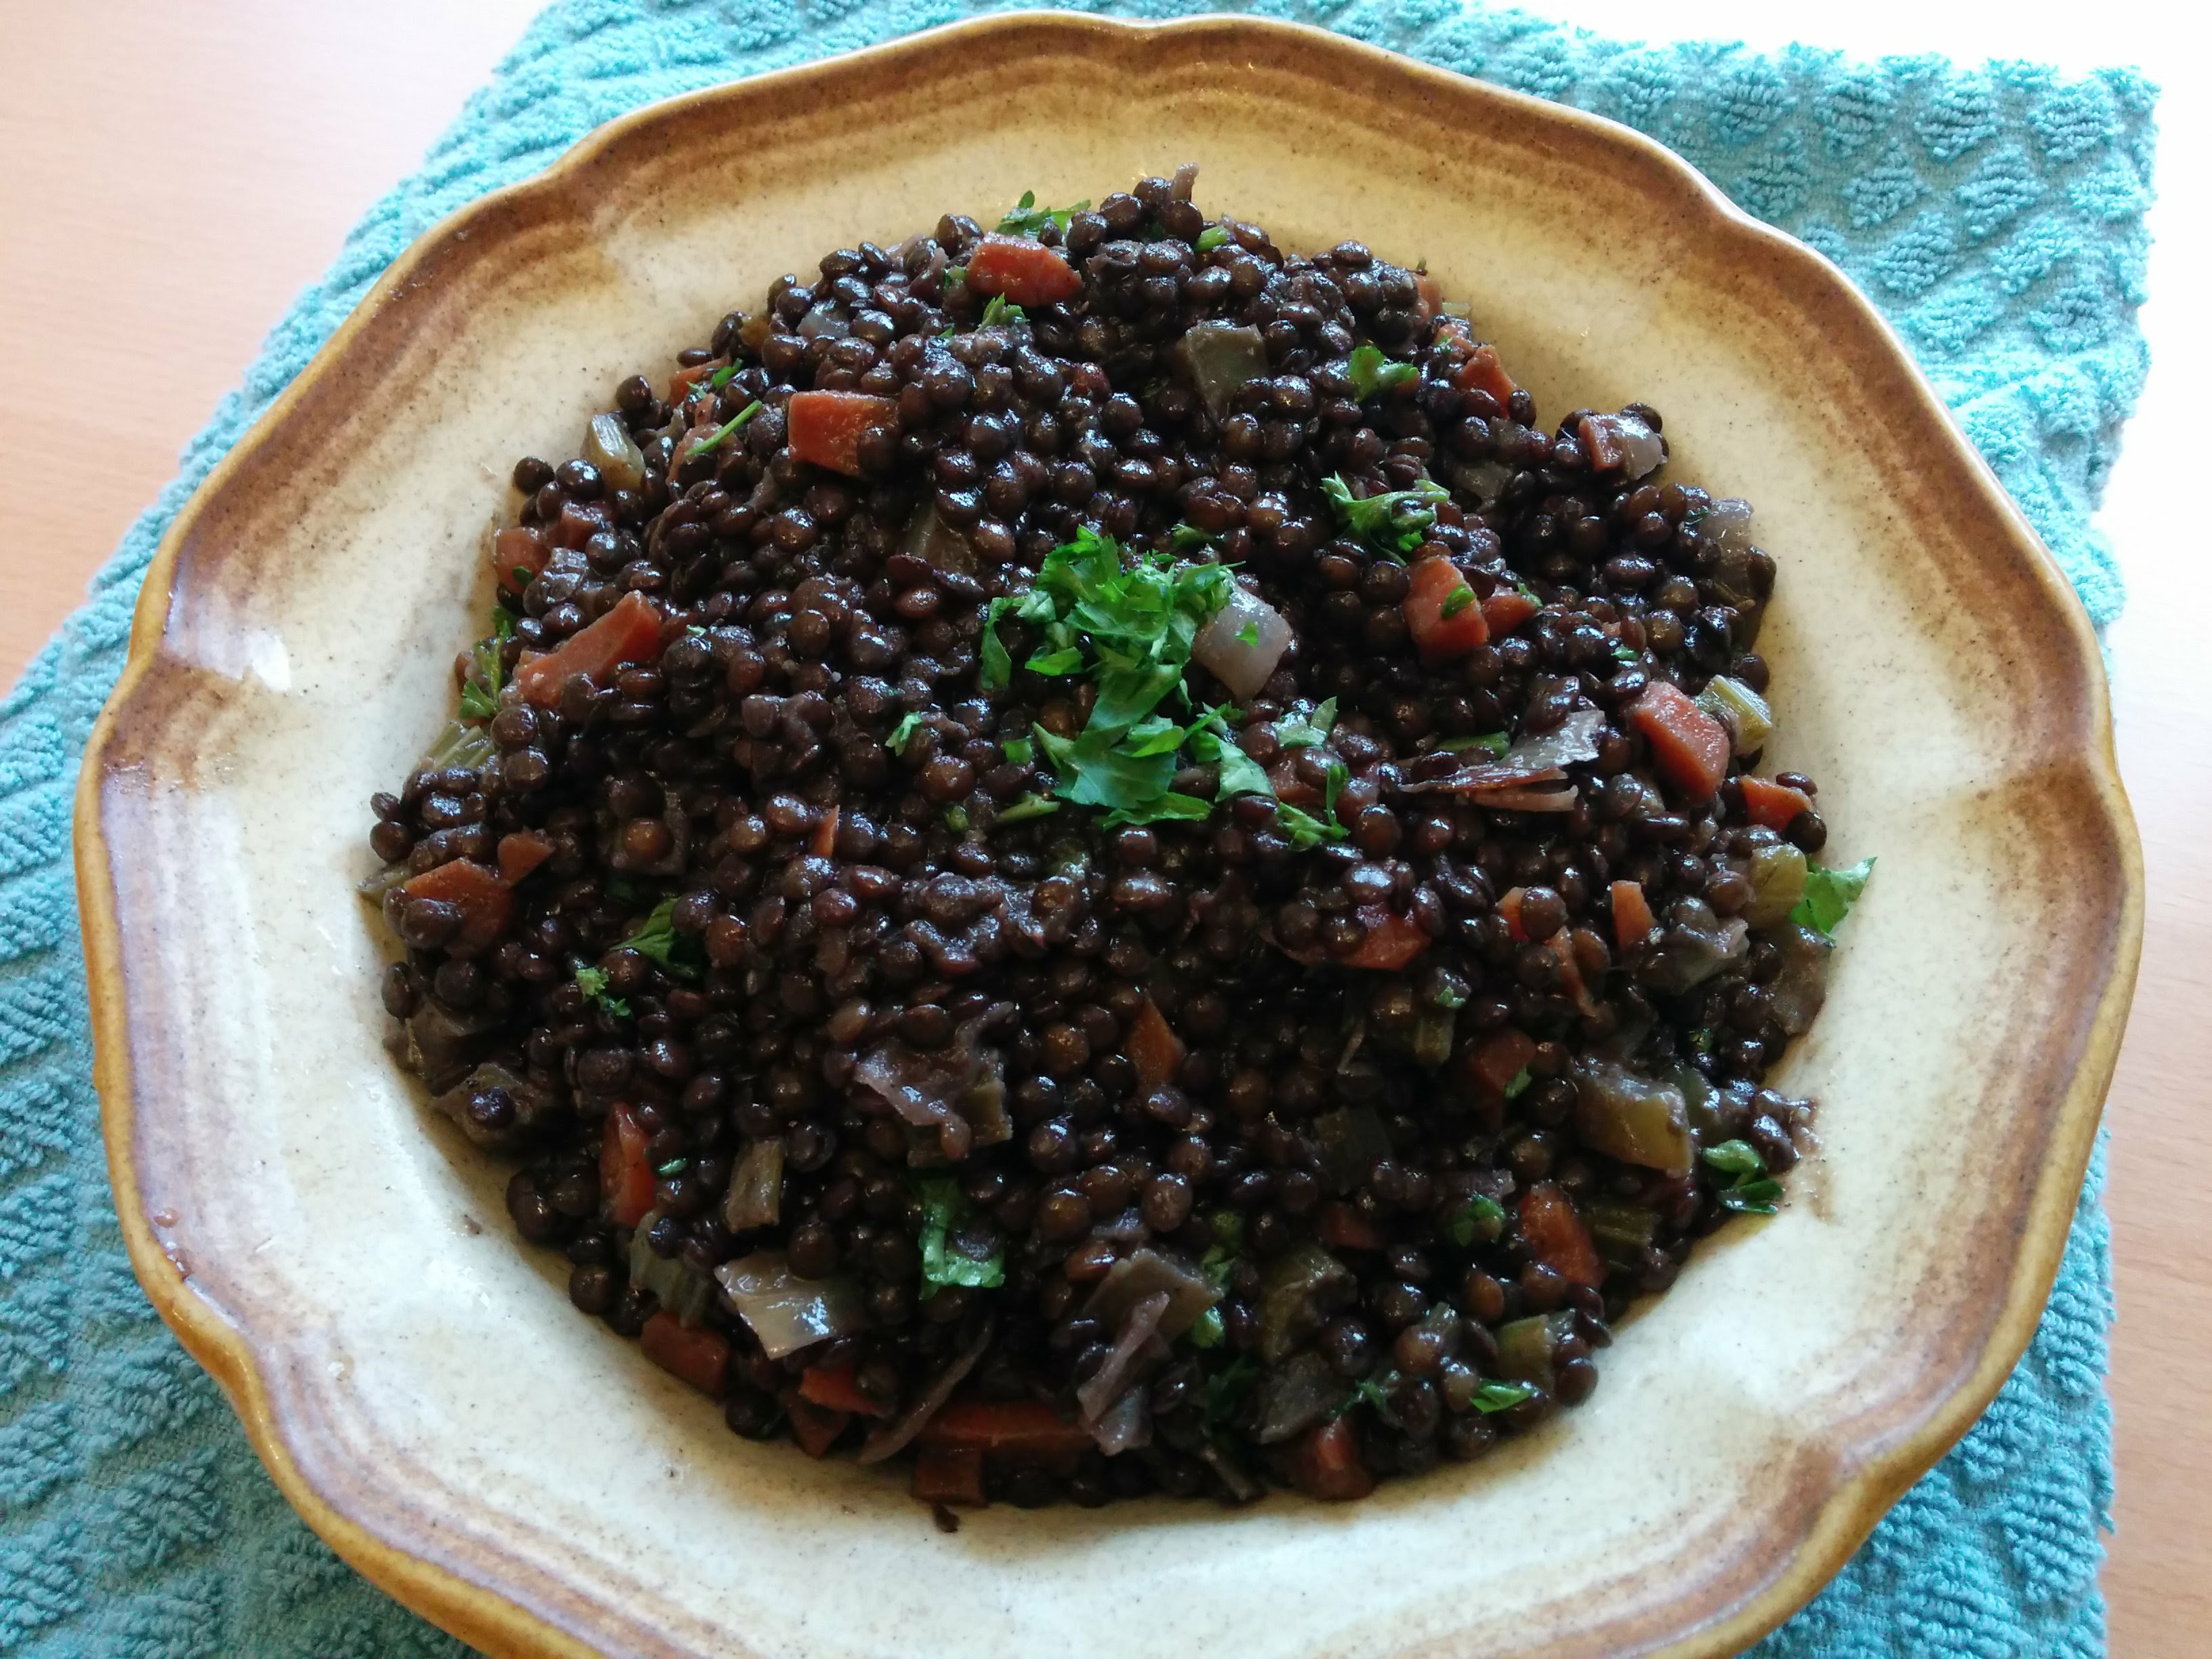 Braised Black Lentils Recipe Allrecipes